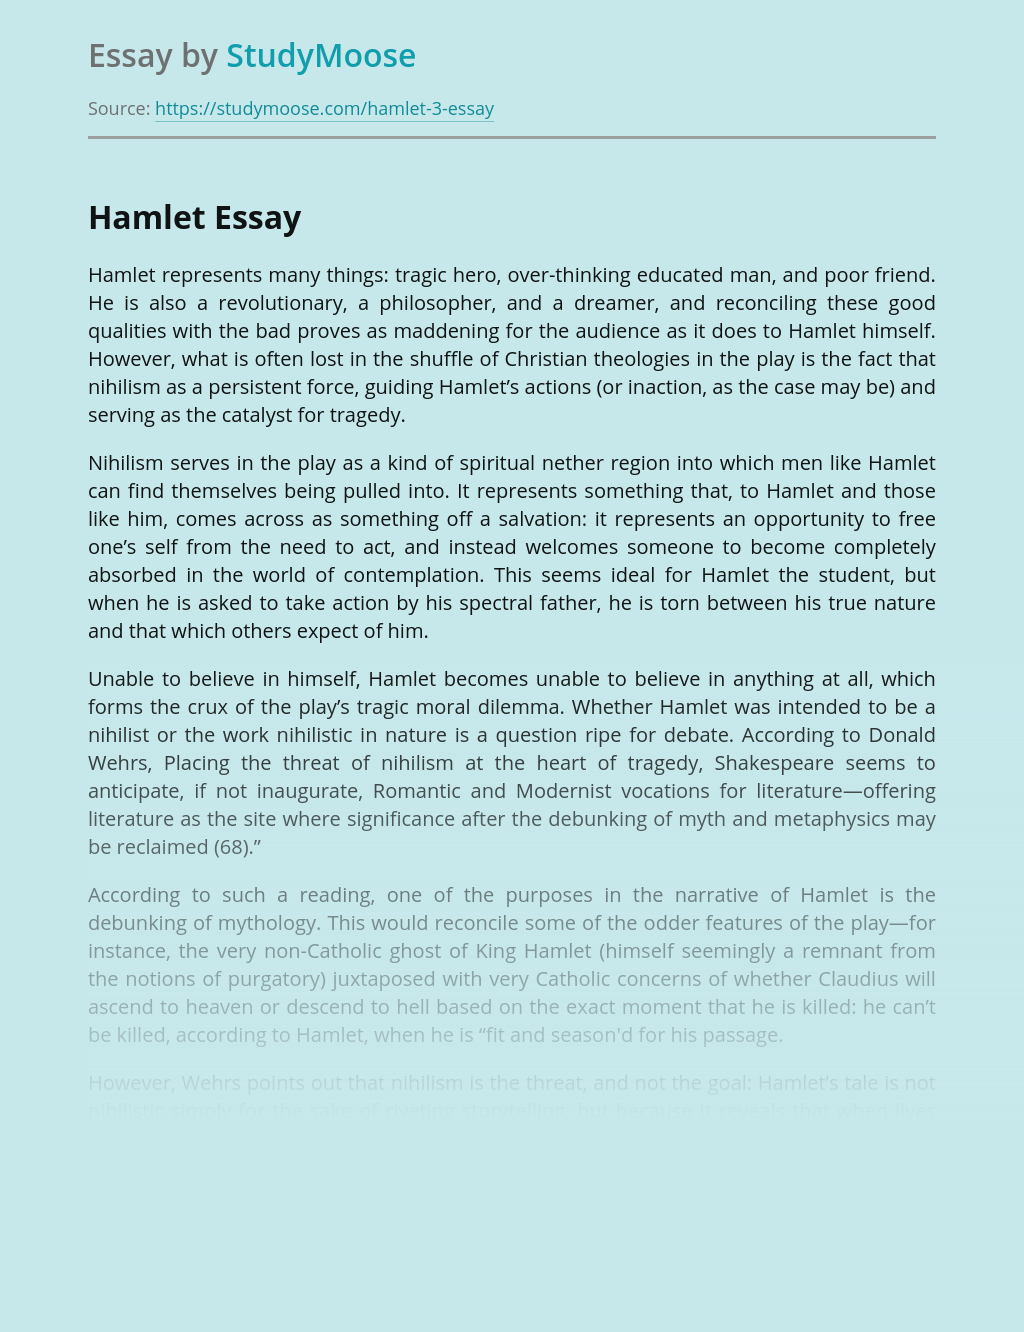 Hamlet Analysis: Characters, Themes, Main Conflicts